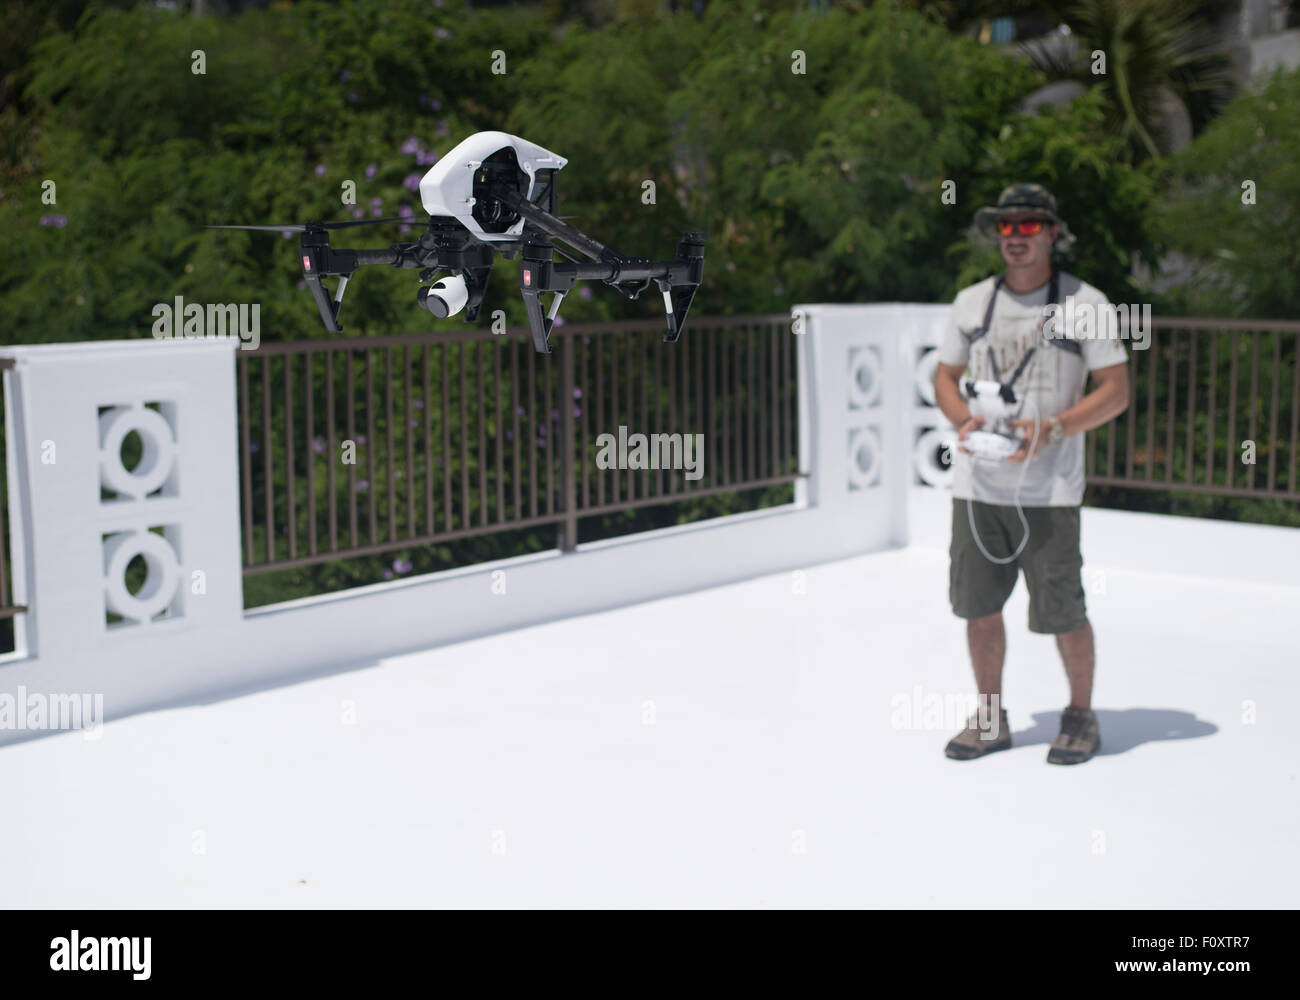 Man controlling DJI Inspire Drone quadcopter a  commercial and recreational unmanned aerial vehicle for aerial photography - Stock Image